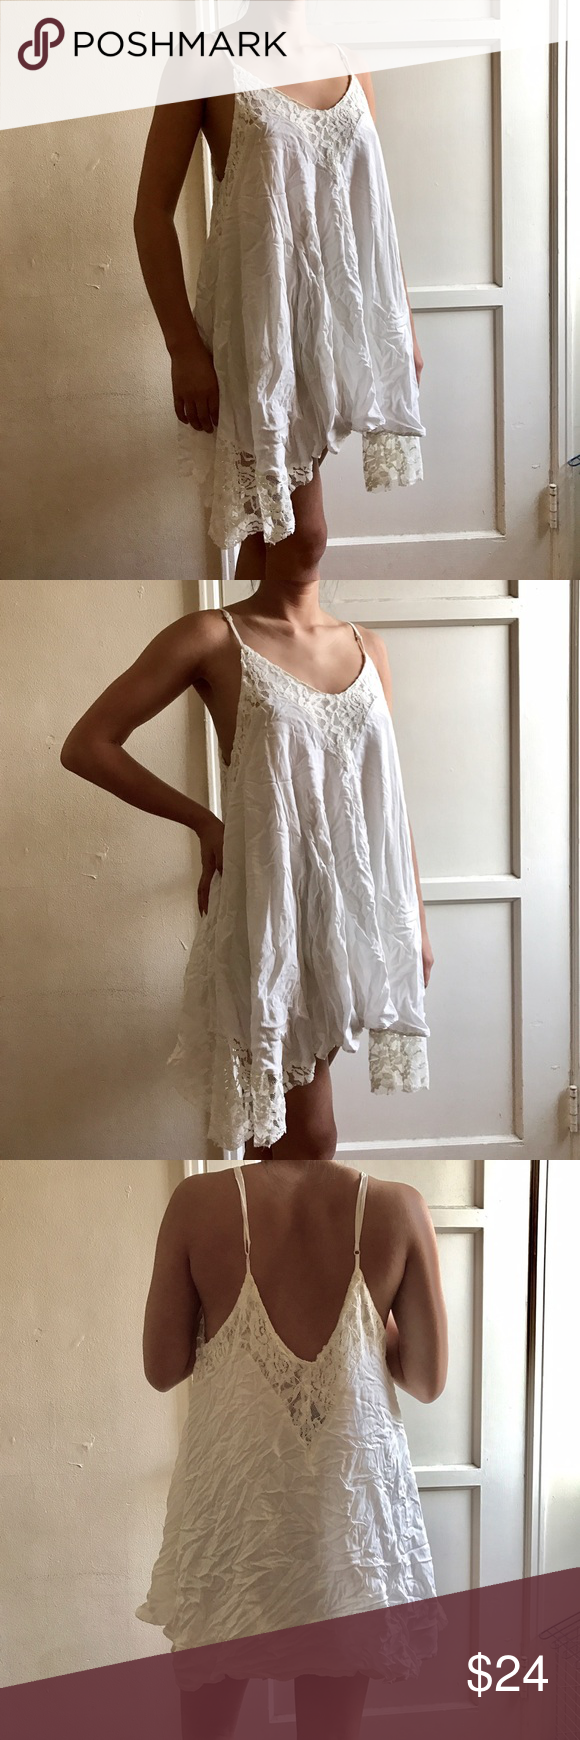 White Lace Rayon Dress Worn once! I apologize for the dress having the wrinkles but that's because the material is rayon. It's super comfy but a little loose on me. It's super cute for special occasions! Willing to negotiate & no trades! Dresses Mini